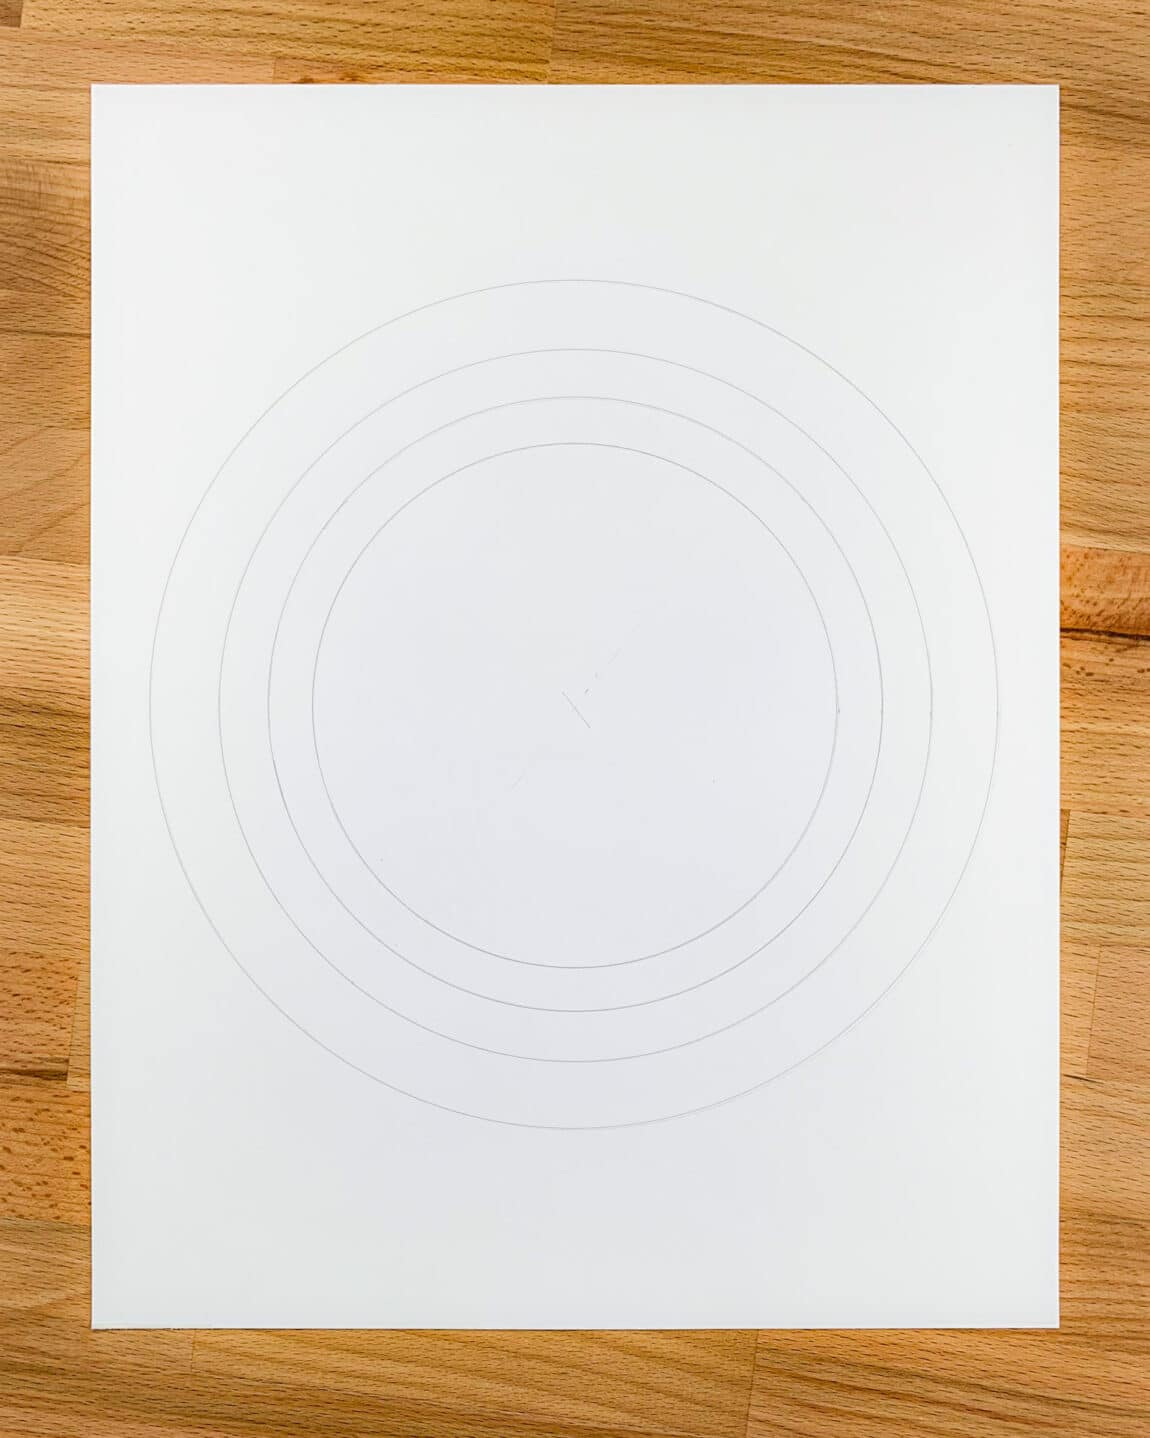 circle guidelines for the calligram piece